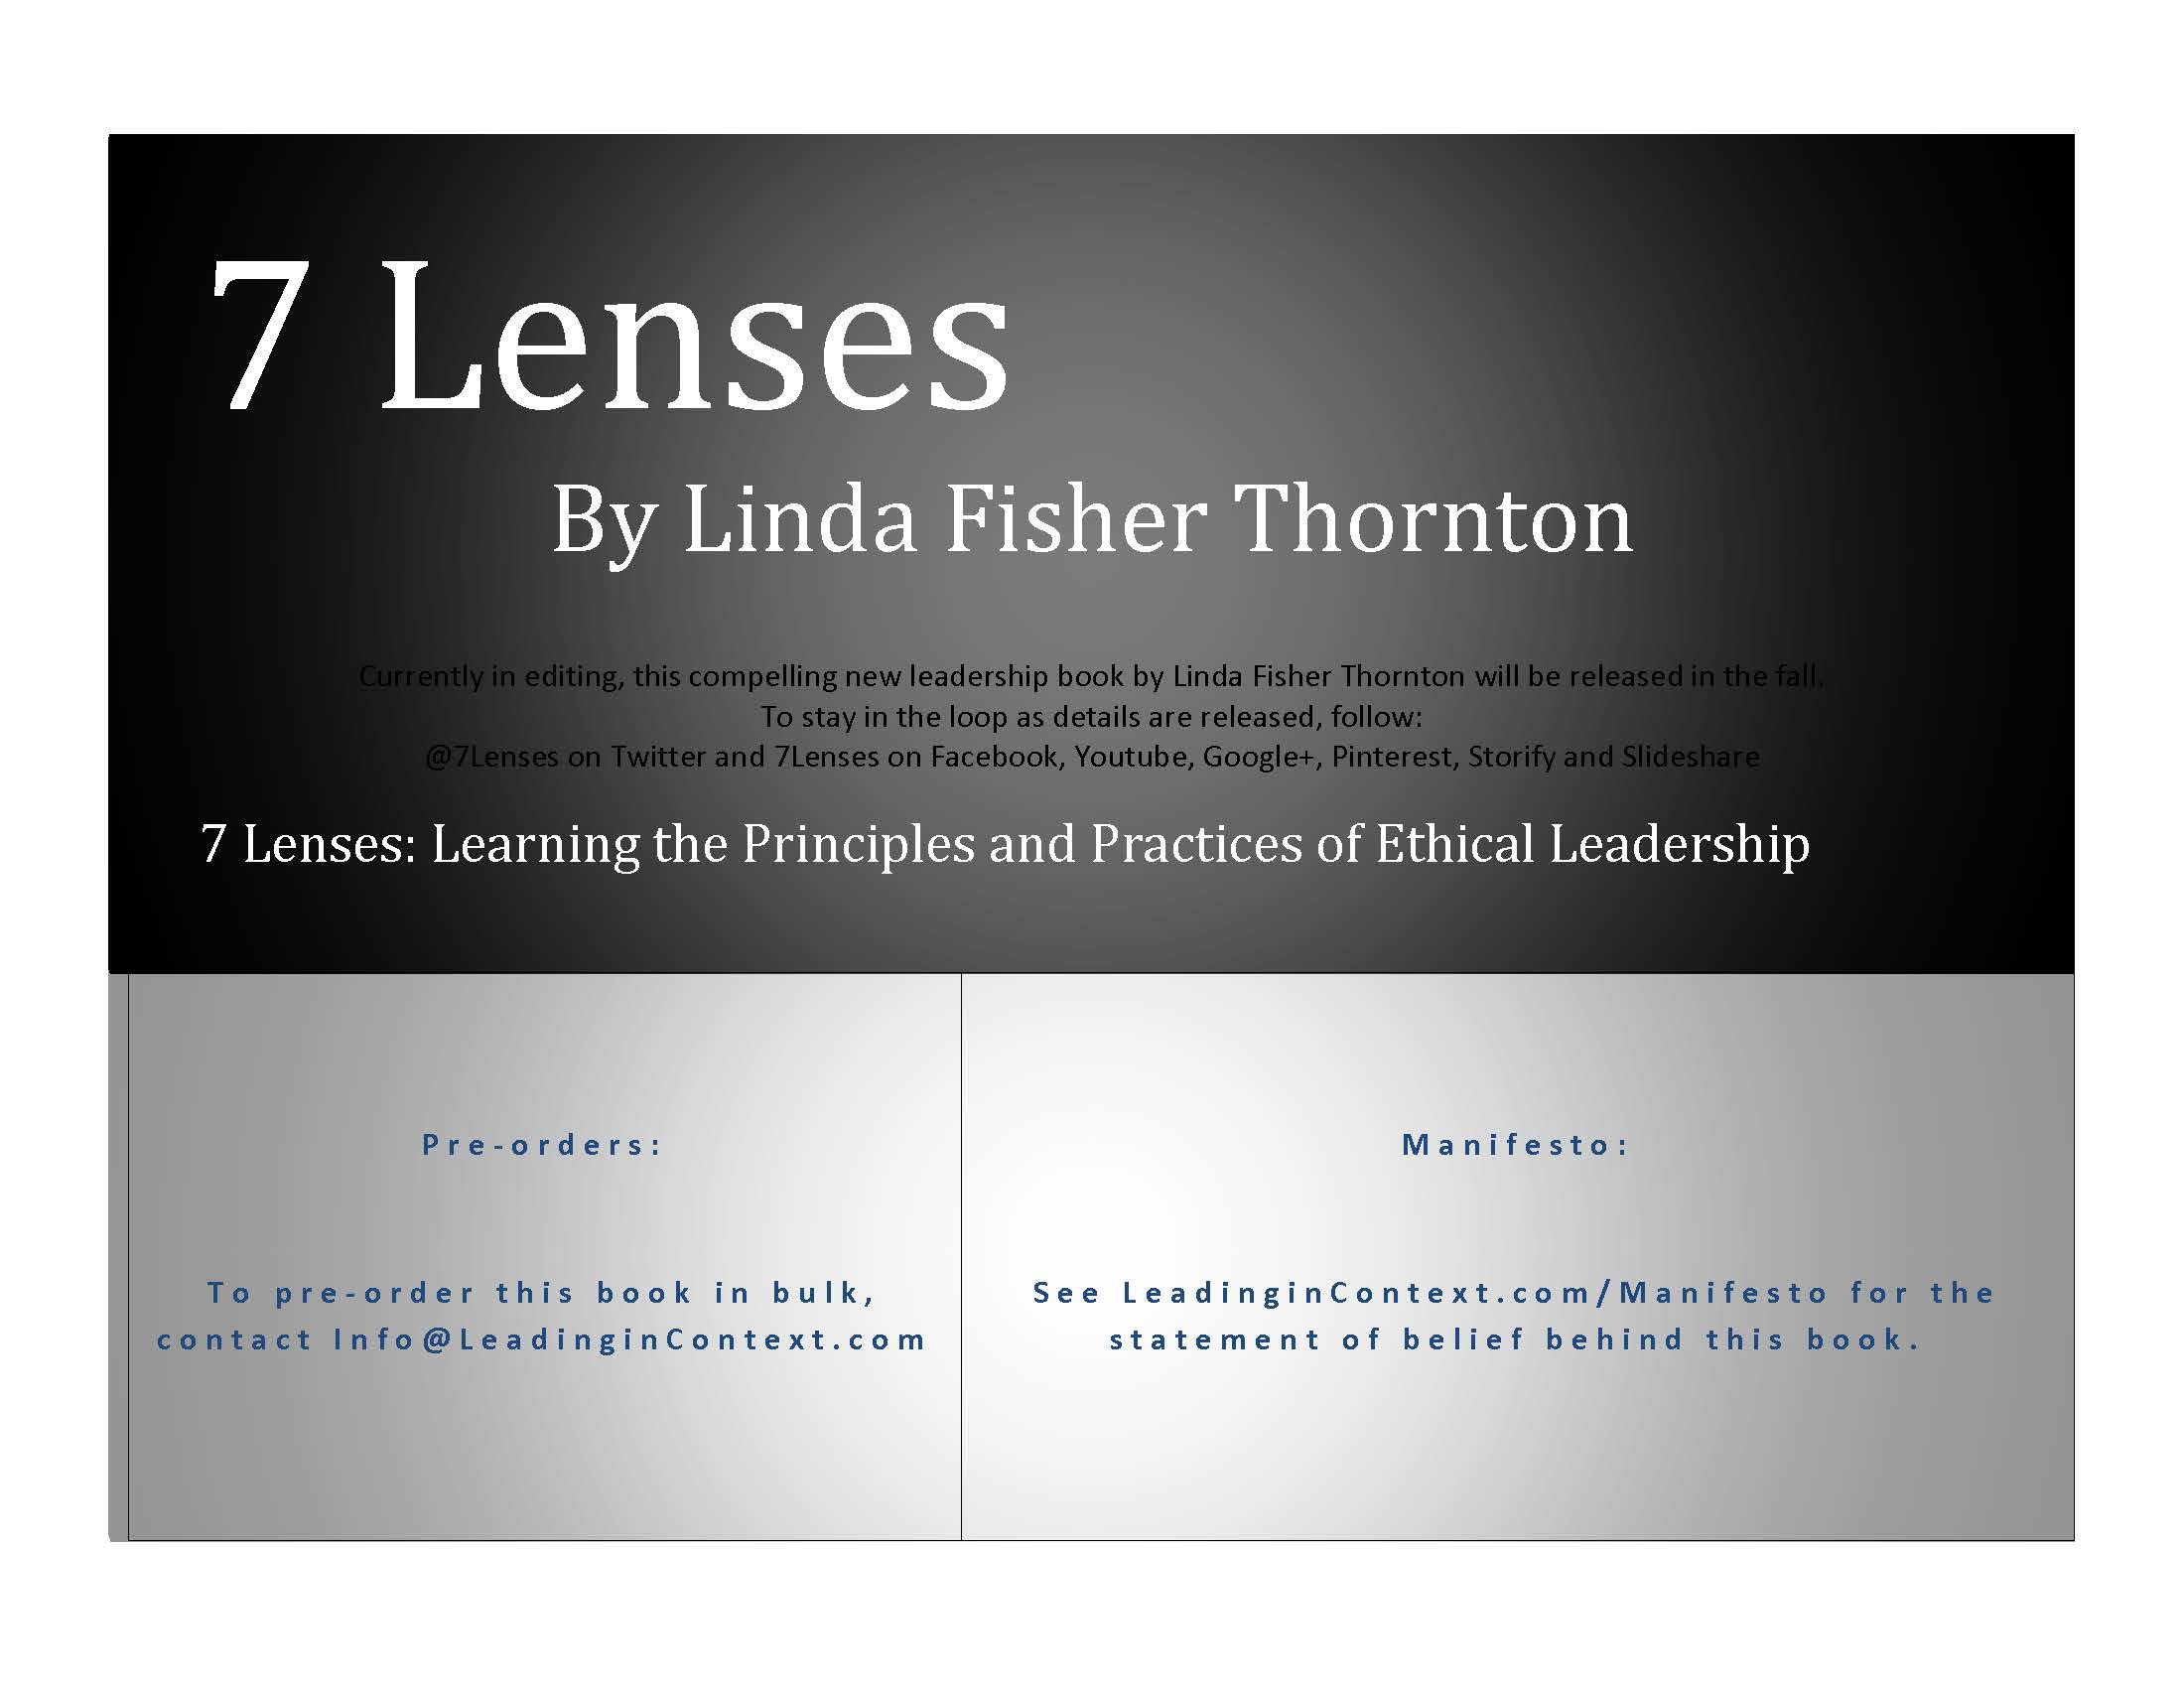 Leading in Context